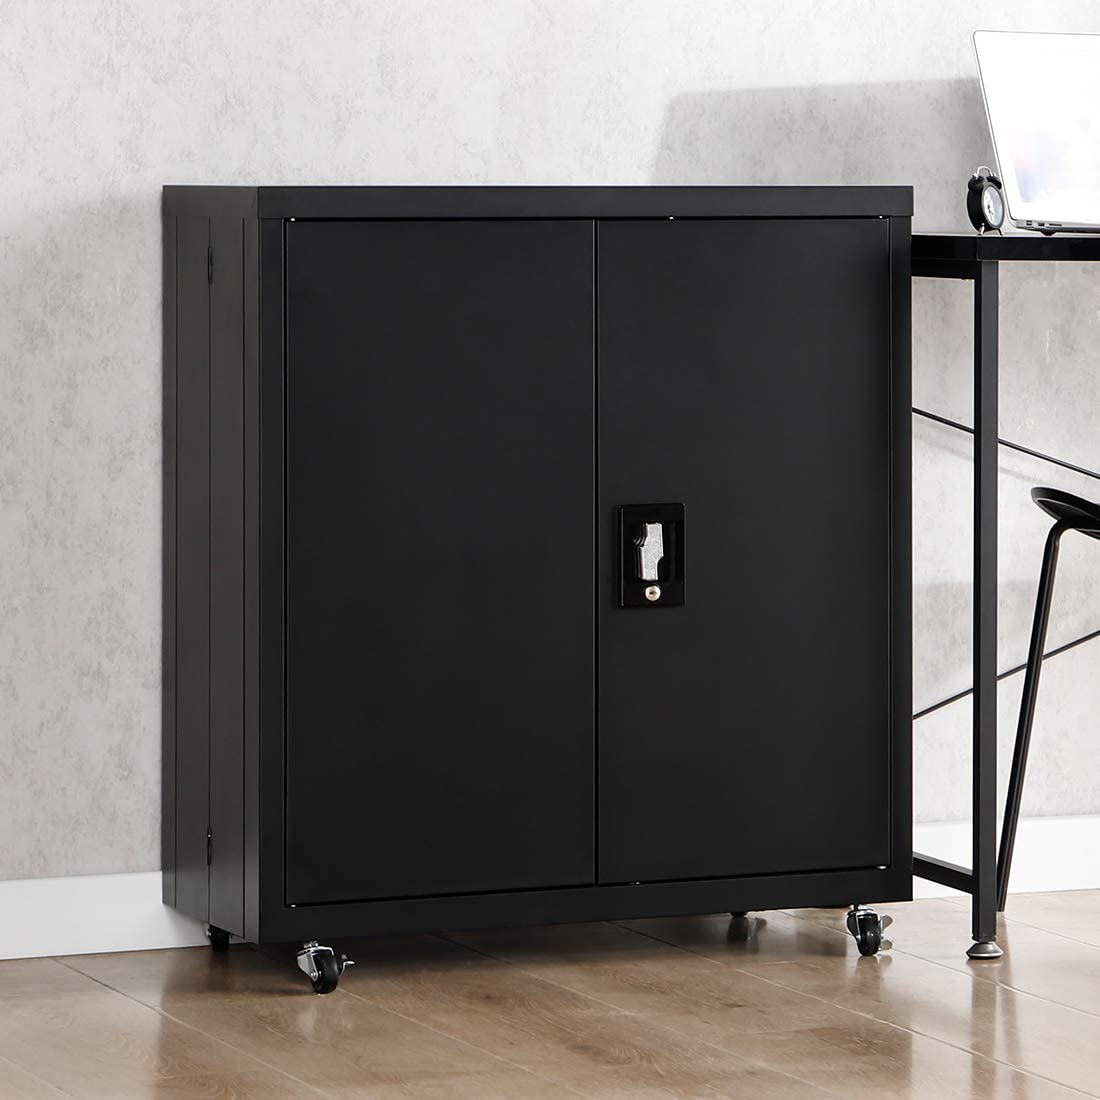 """GREATMEET Gauge 24 Metal Cabinet Locking Half Height Steel Counter Cabinet with 1 Adjustable Shelves and Wheels for Home Office, Black(27.56"""" L x 13.78"""" W x 31.5"""" H)"""